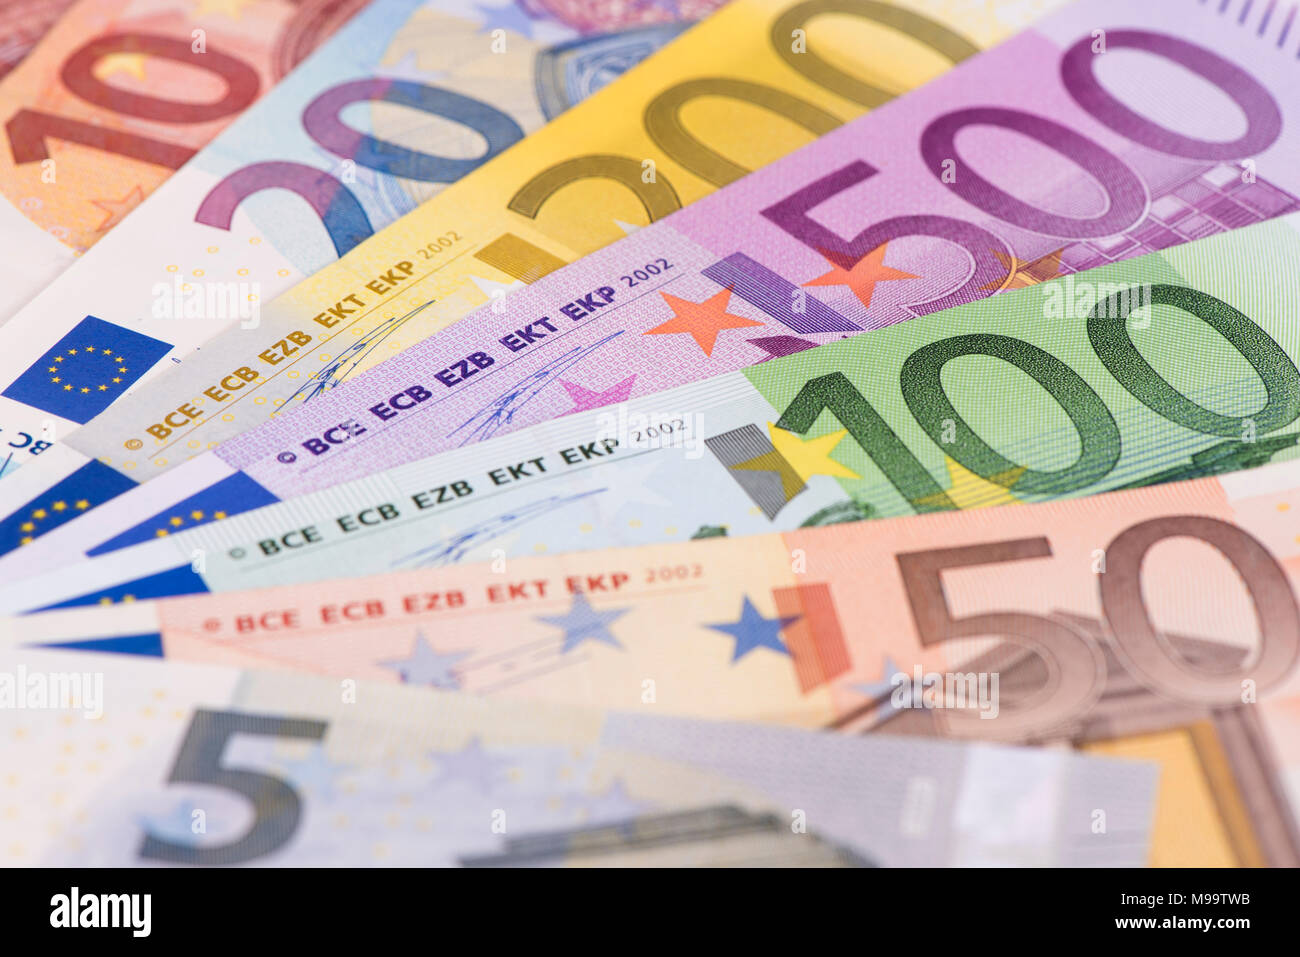 group of many Euro banknotes laying on table - Stock Image